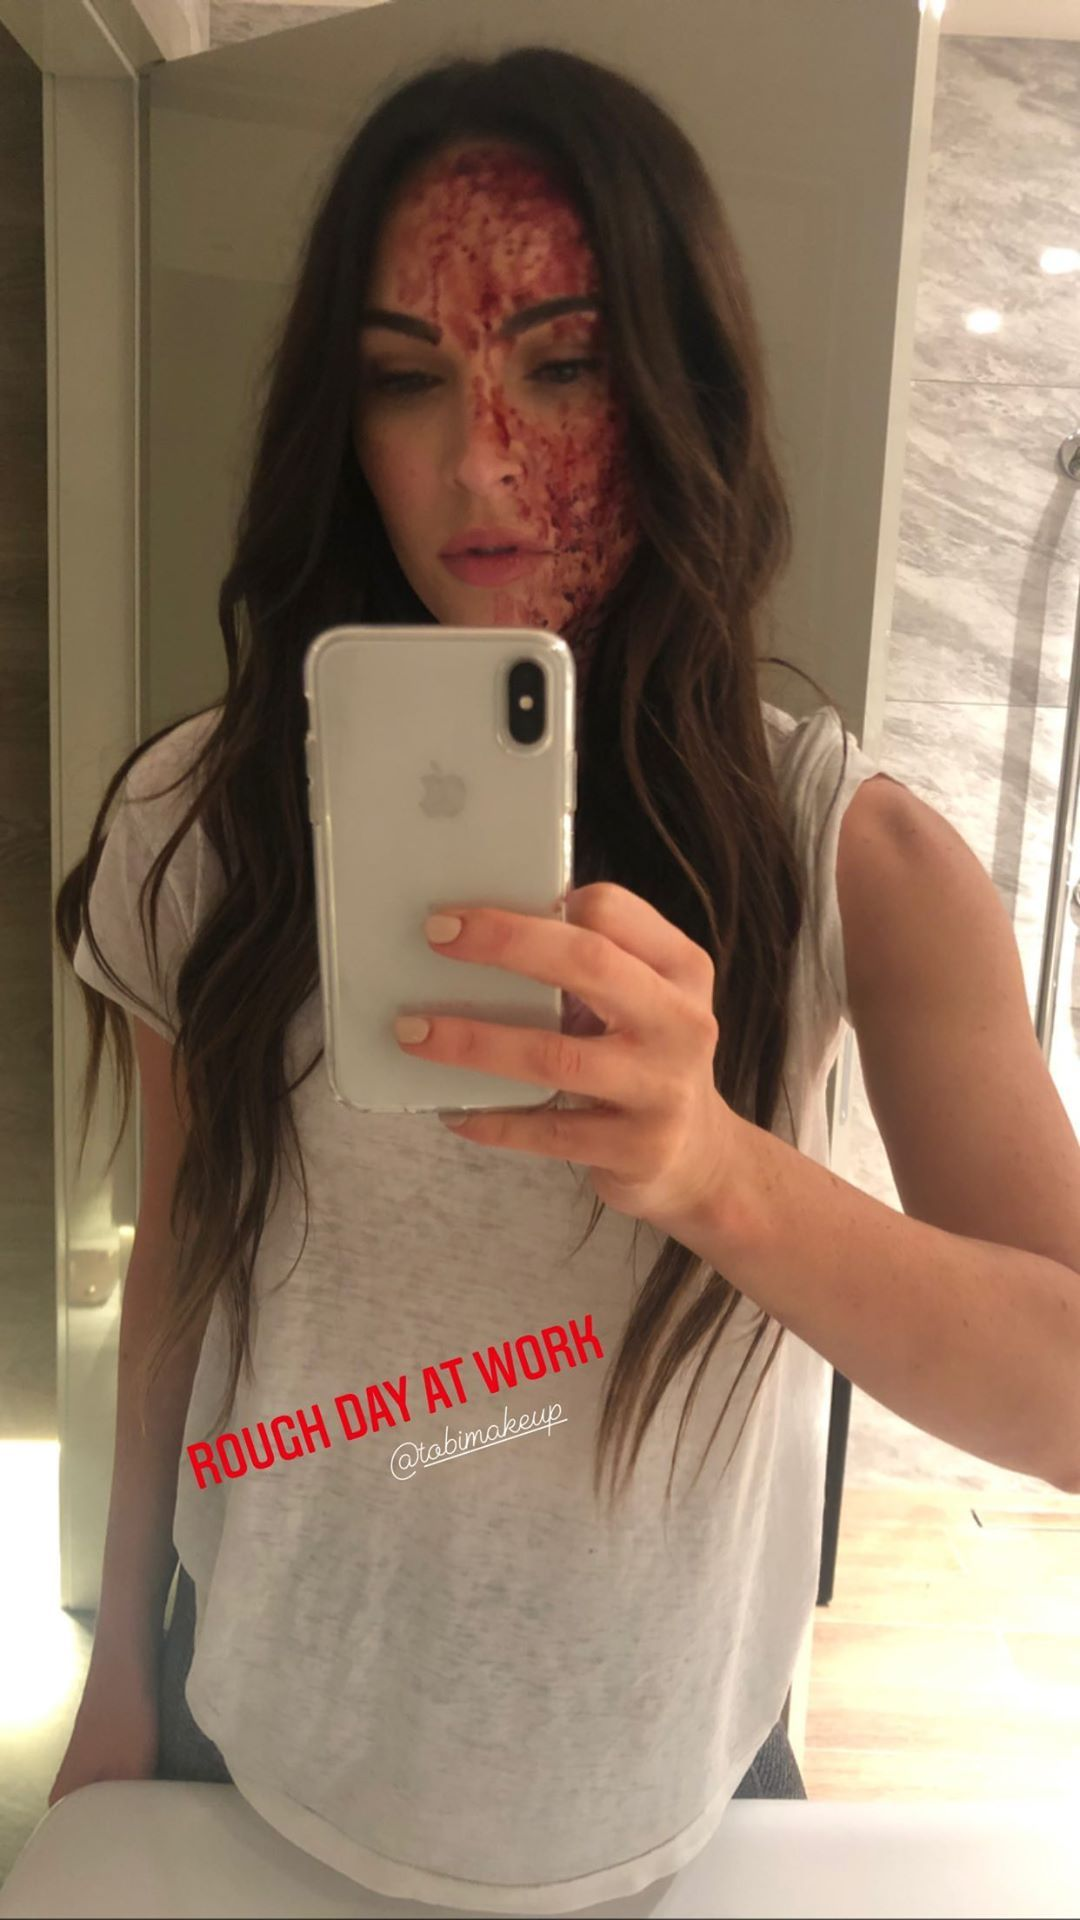 Megan Fox Shows Off Her Rough Day While Ex-Hubby Sends Motherly Reminders